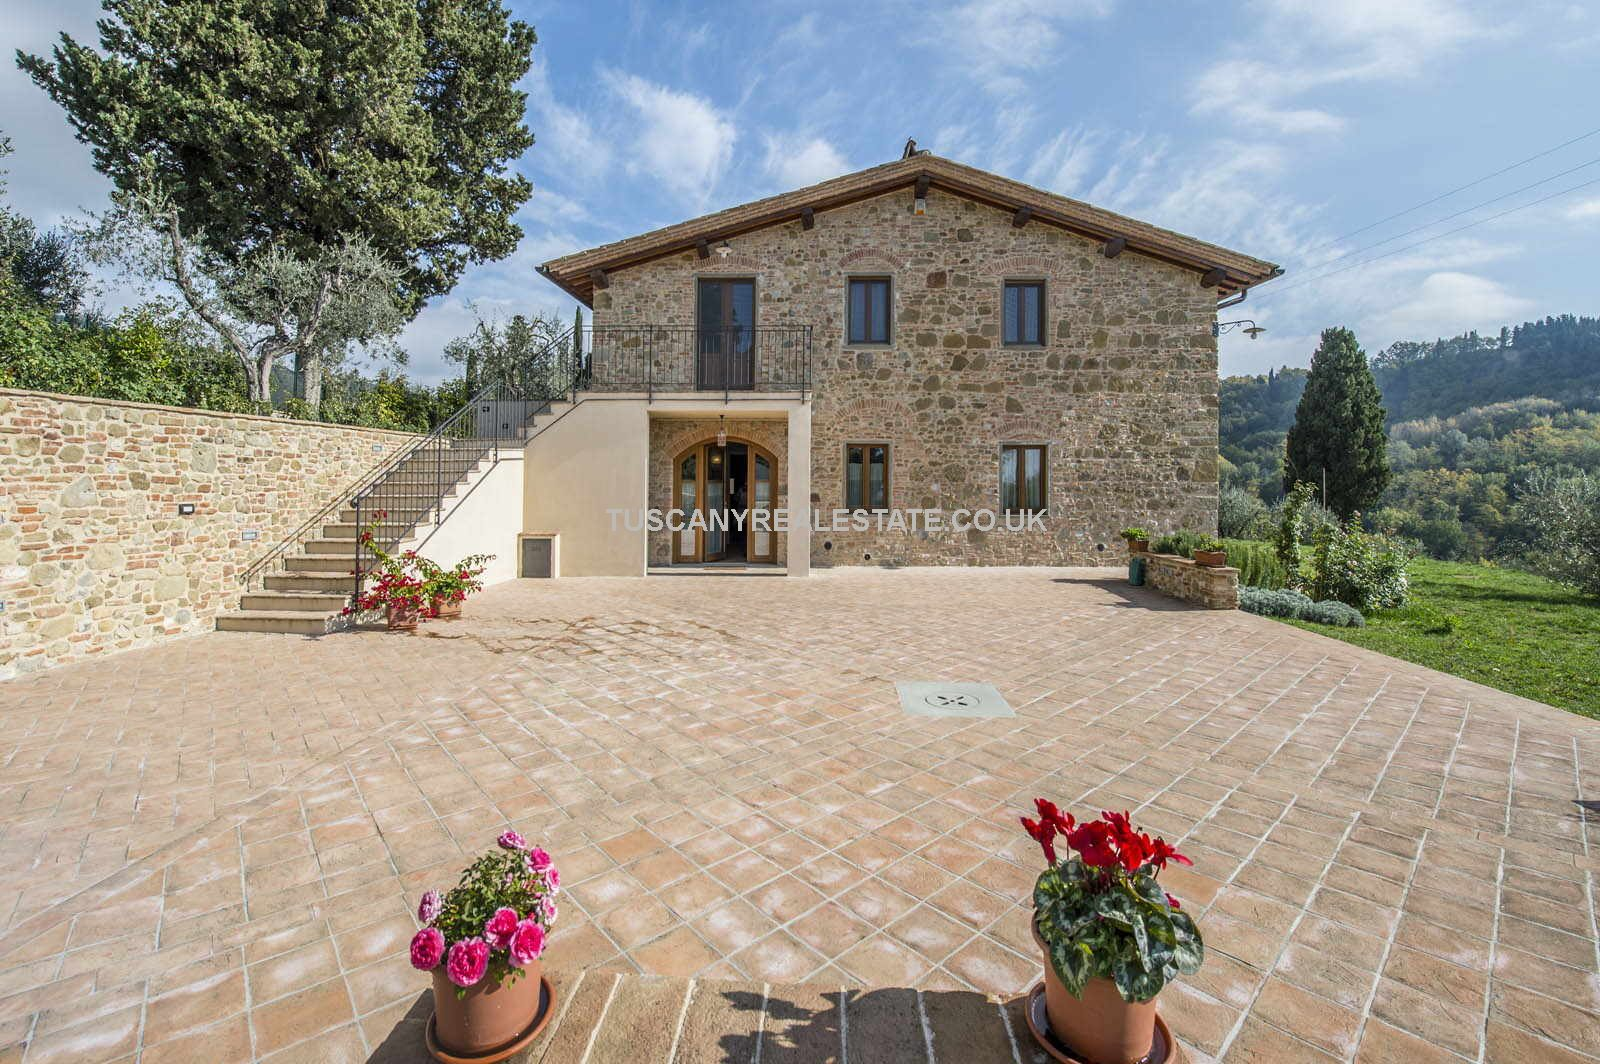 Restored stone farmhouse, garden, olive grove